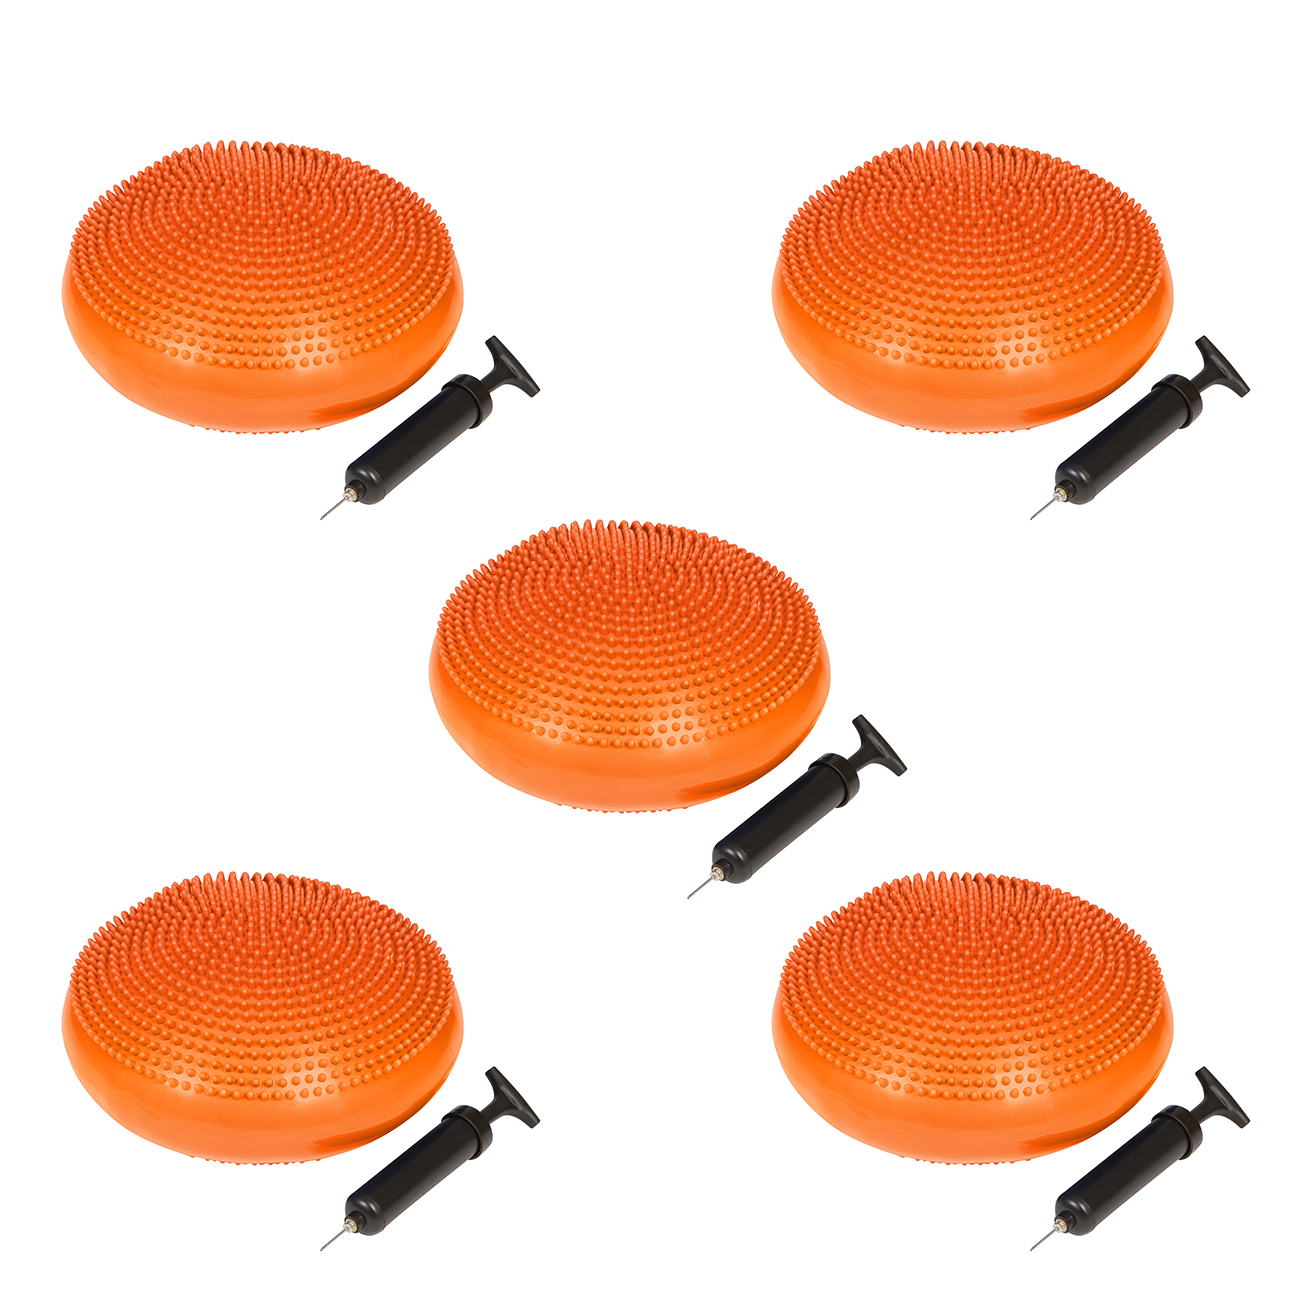 PVC Fitness and Balance Disc - 13-Inch Diameter - Set of 5 - By Trademark Innovations (Orange)